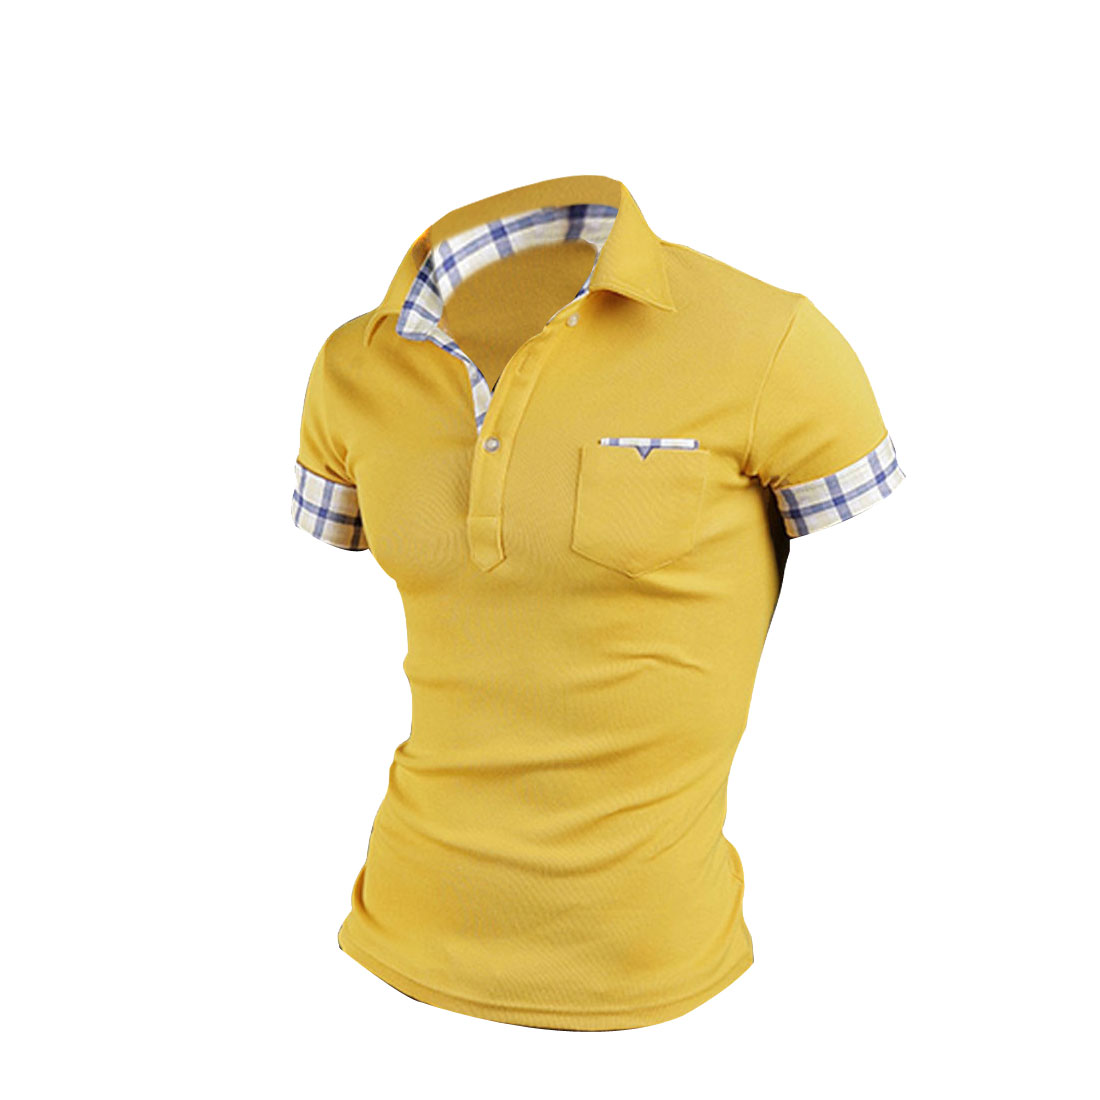 Man Chic Mustard Short Sleeve Plaid Rolled Up Cuff Polo Shirt M